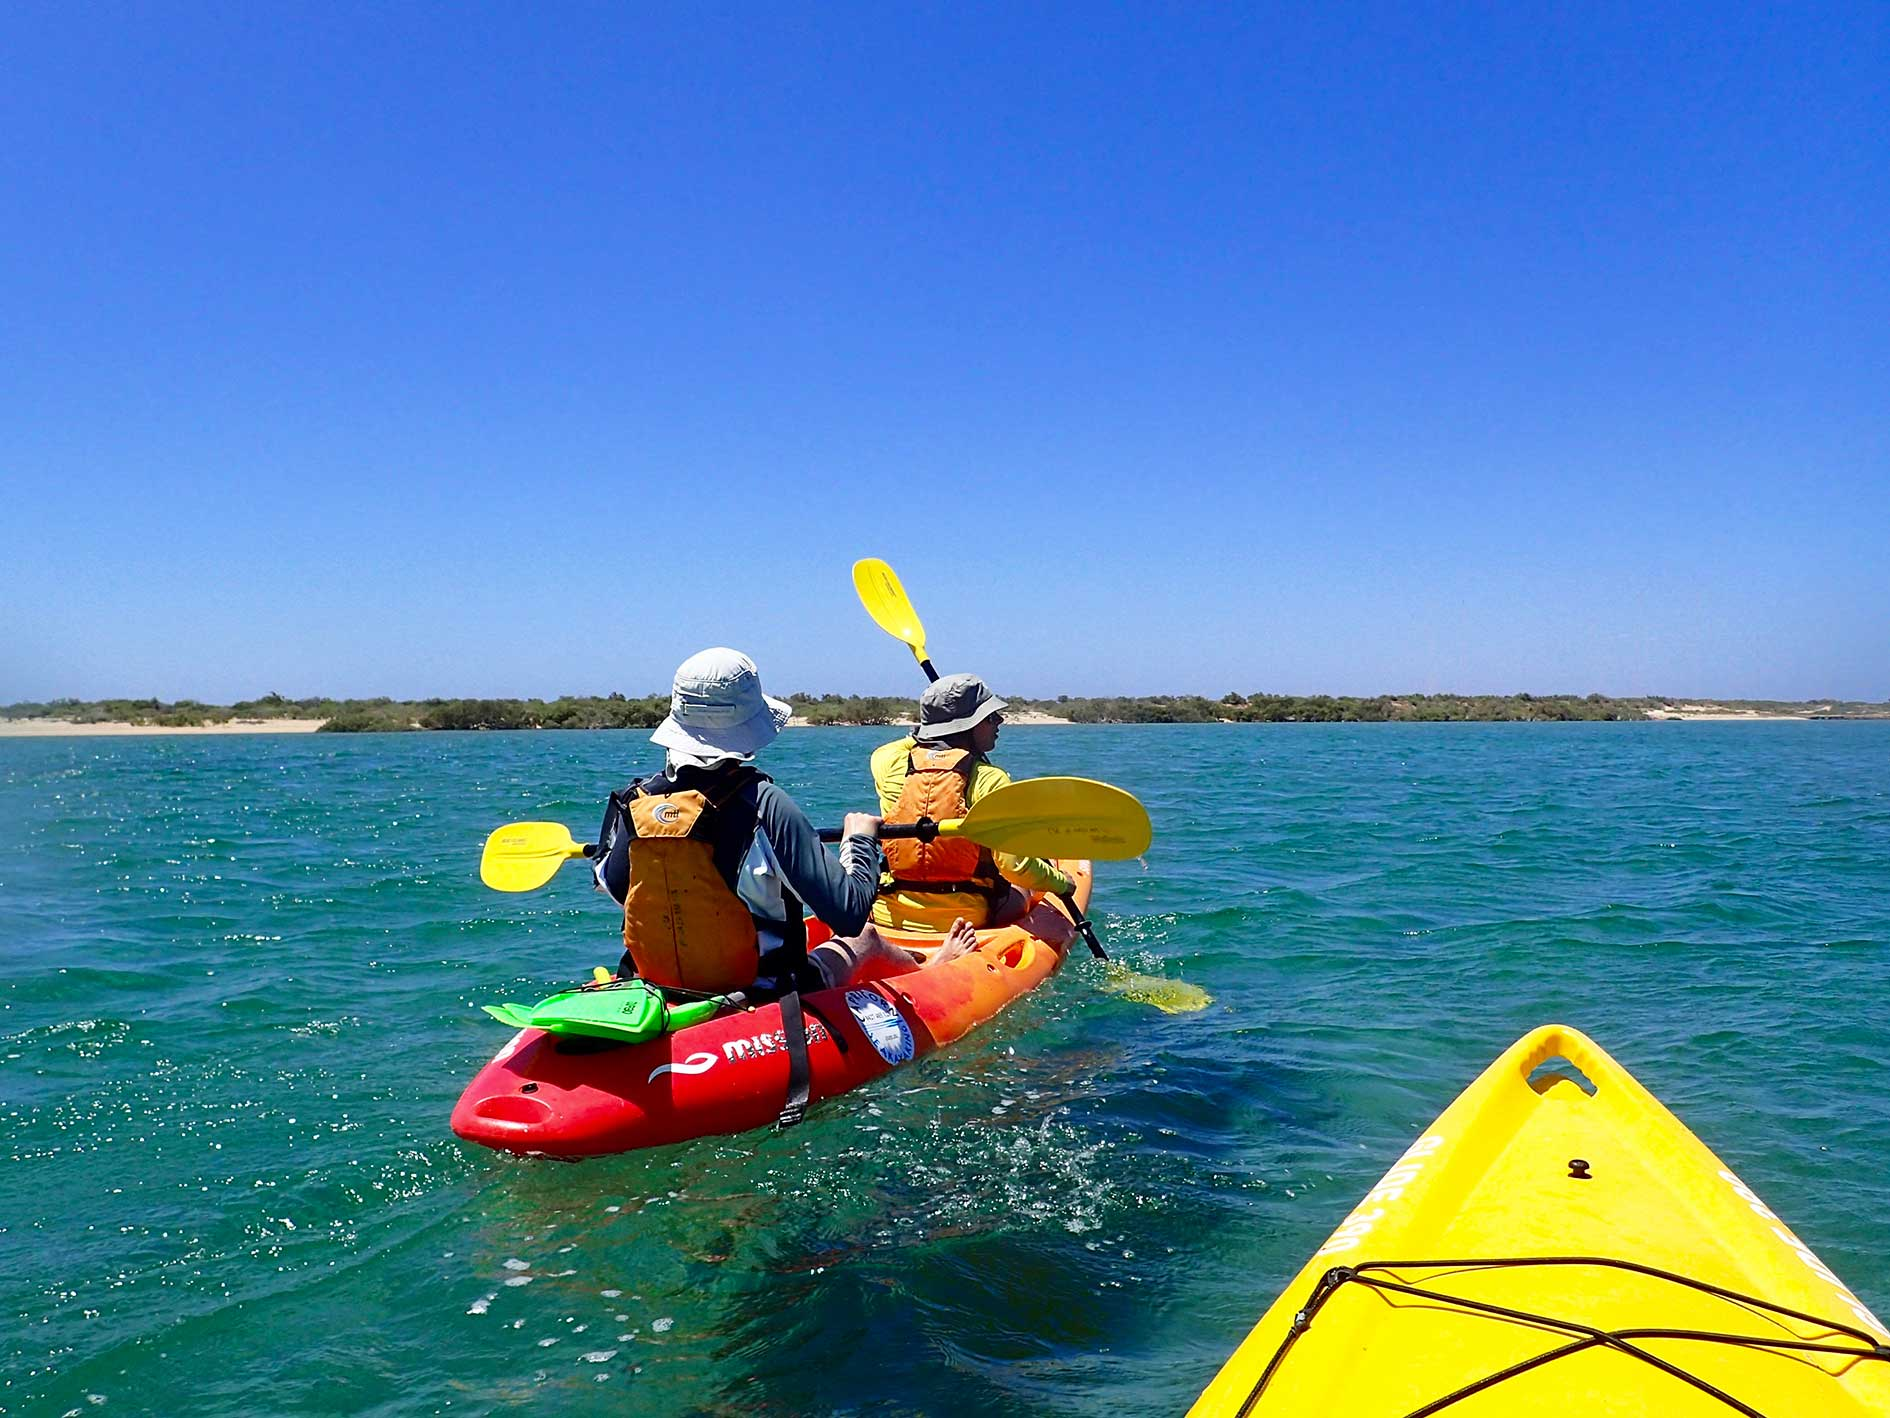 sea kayak courses, sea kayak training, Australian Canoeing, sea kayak skills, Capricorn Seakayaking, sea kayak Perth, sea kayak tour, Penguin Island, coastal guide course, sit on top course